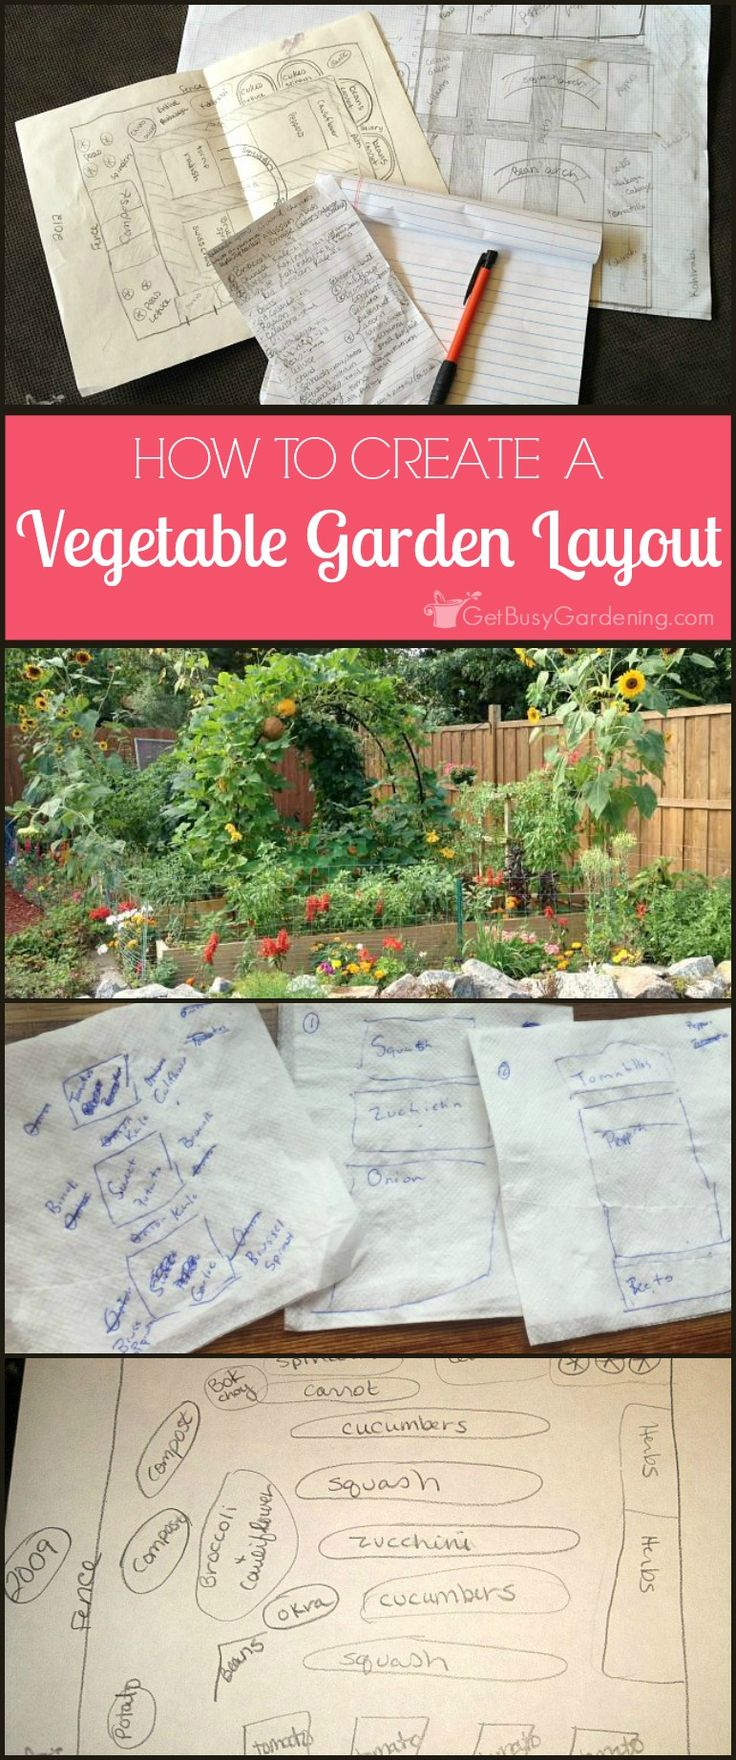 17 best ideas about vegetable garden layouts on pinterest for Vegetable garden designs layouts